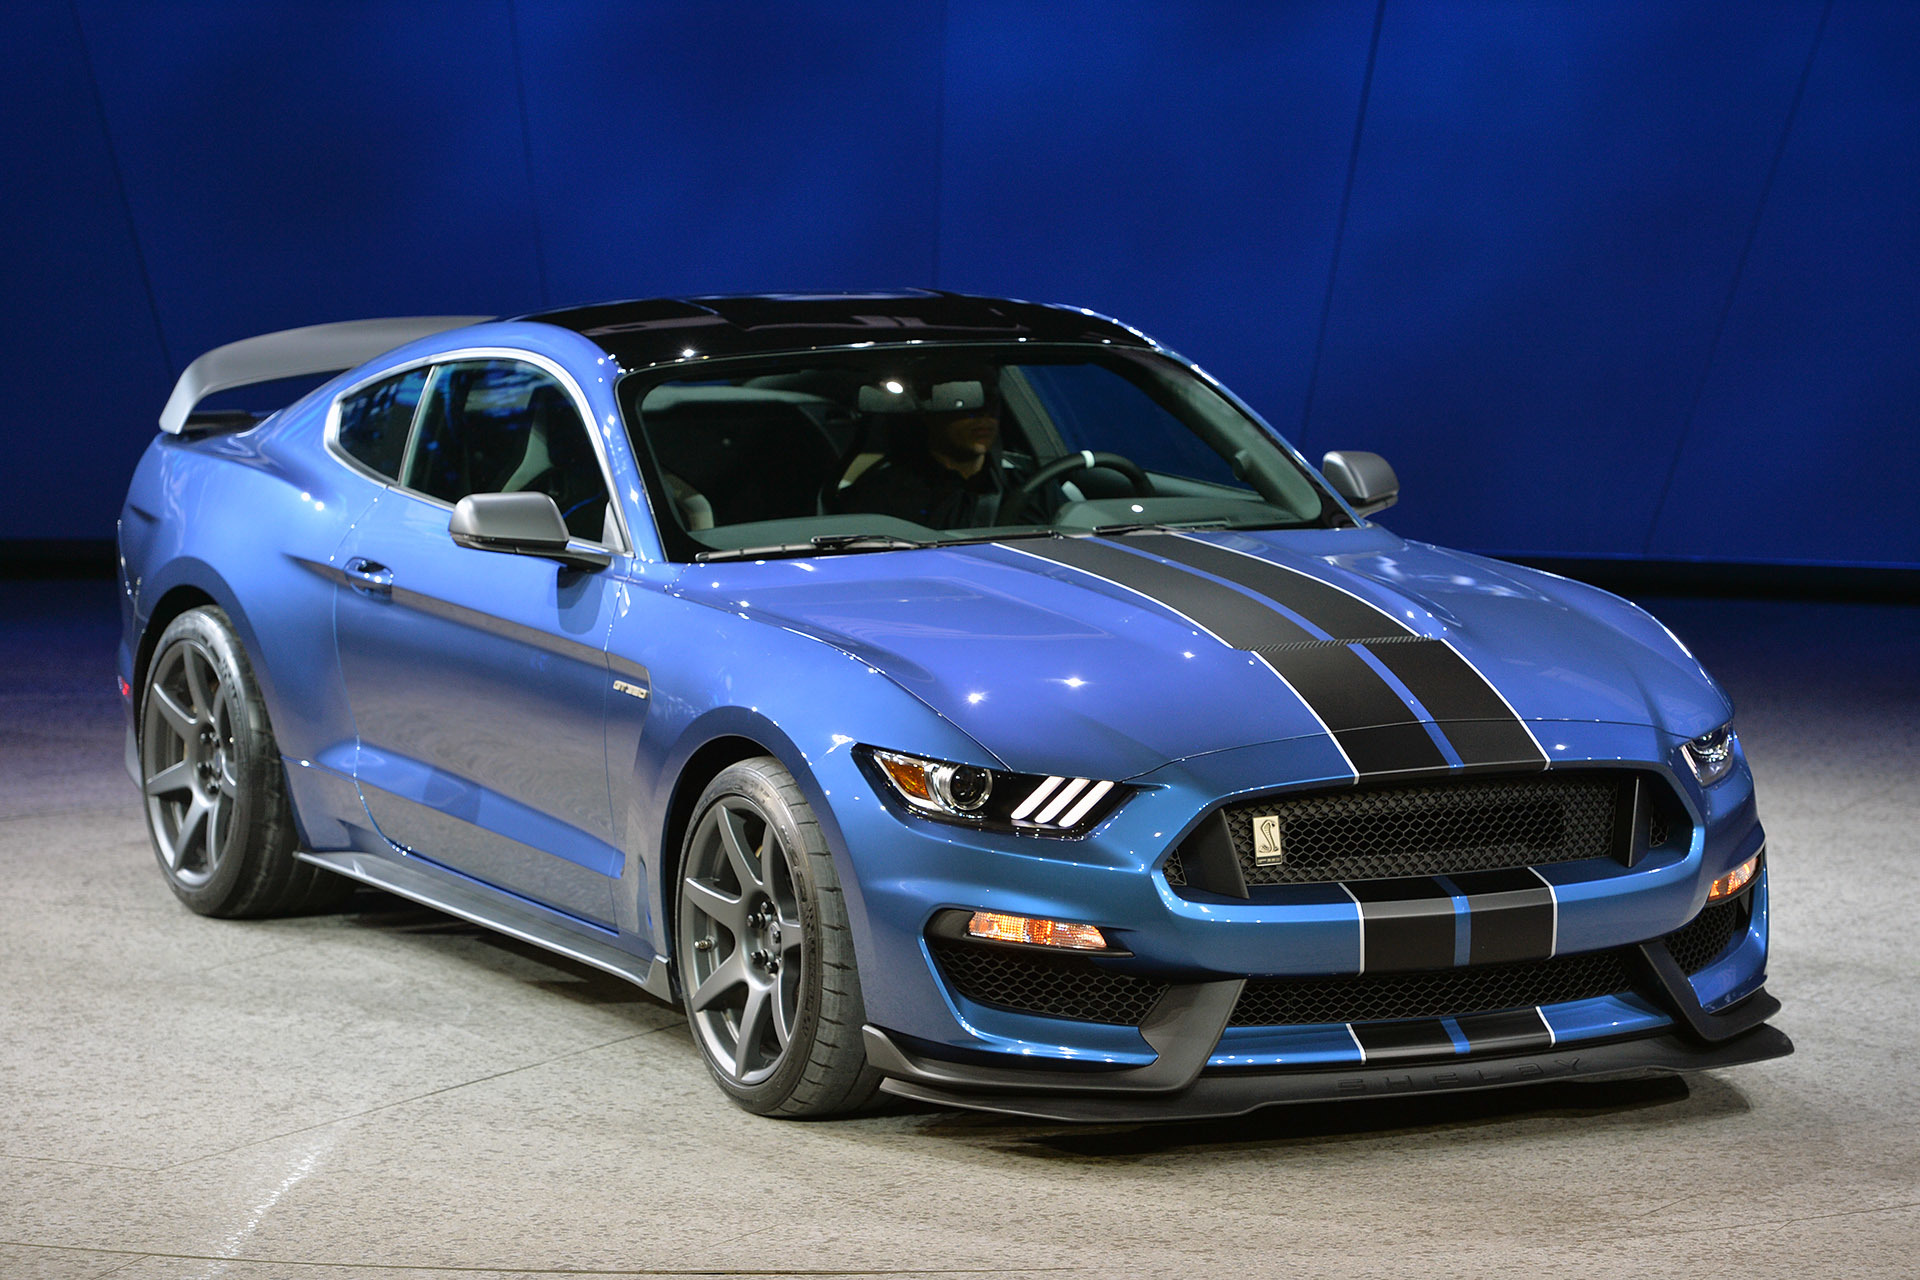 2016 Ford Shelby Gt350r Detroit 2015 Photo Gallery Autoblog